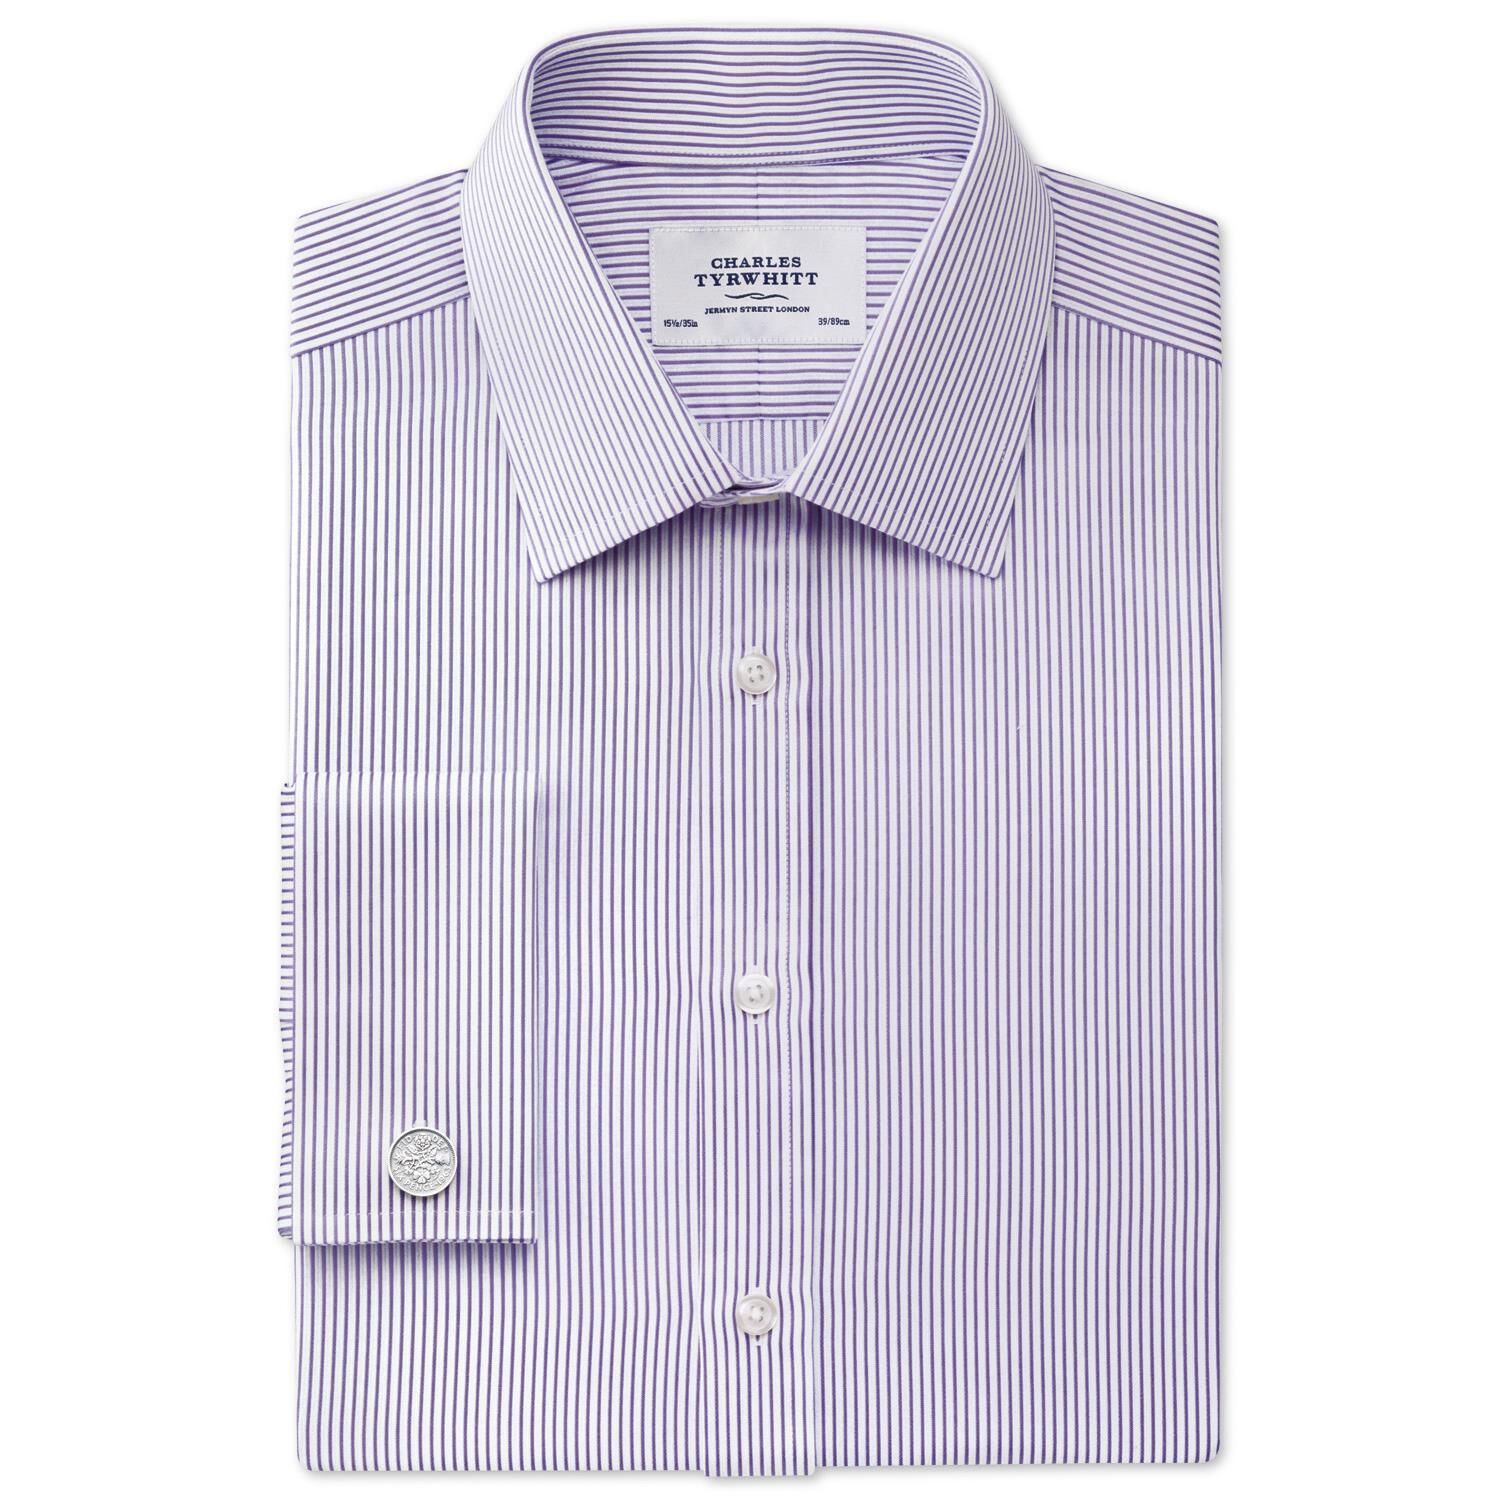 Extra Slim Fit Bedford Raised Stripe Lilac Cotton Formal Shirt Single Cuff Size 15.5/32 by Charles T